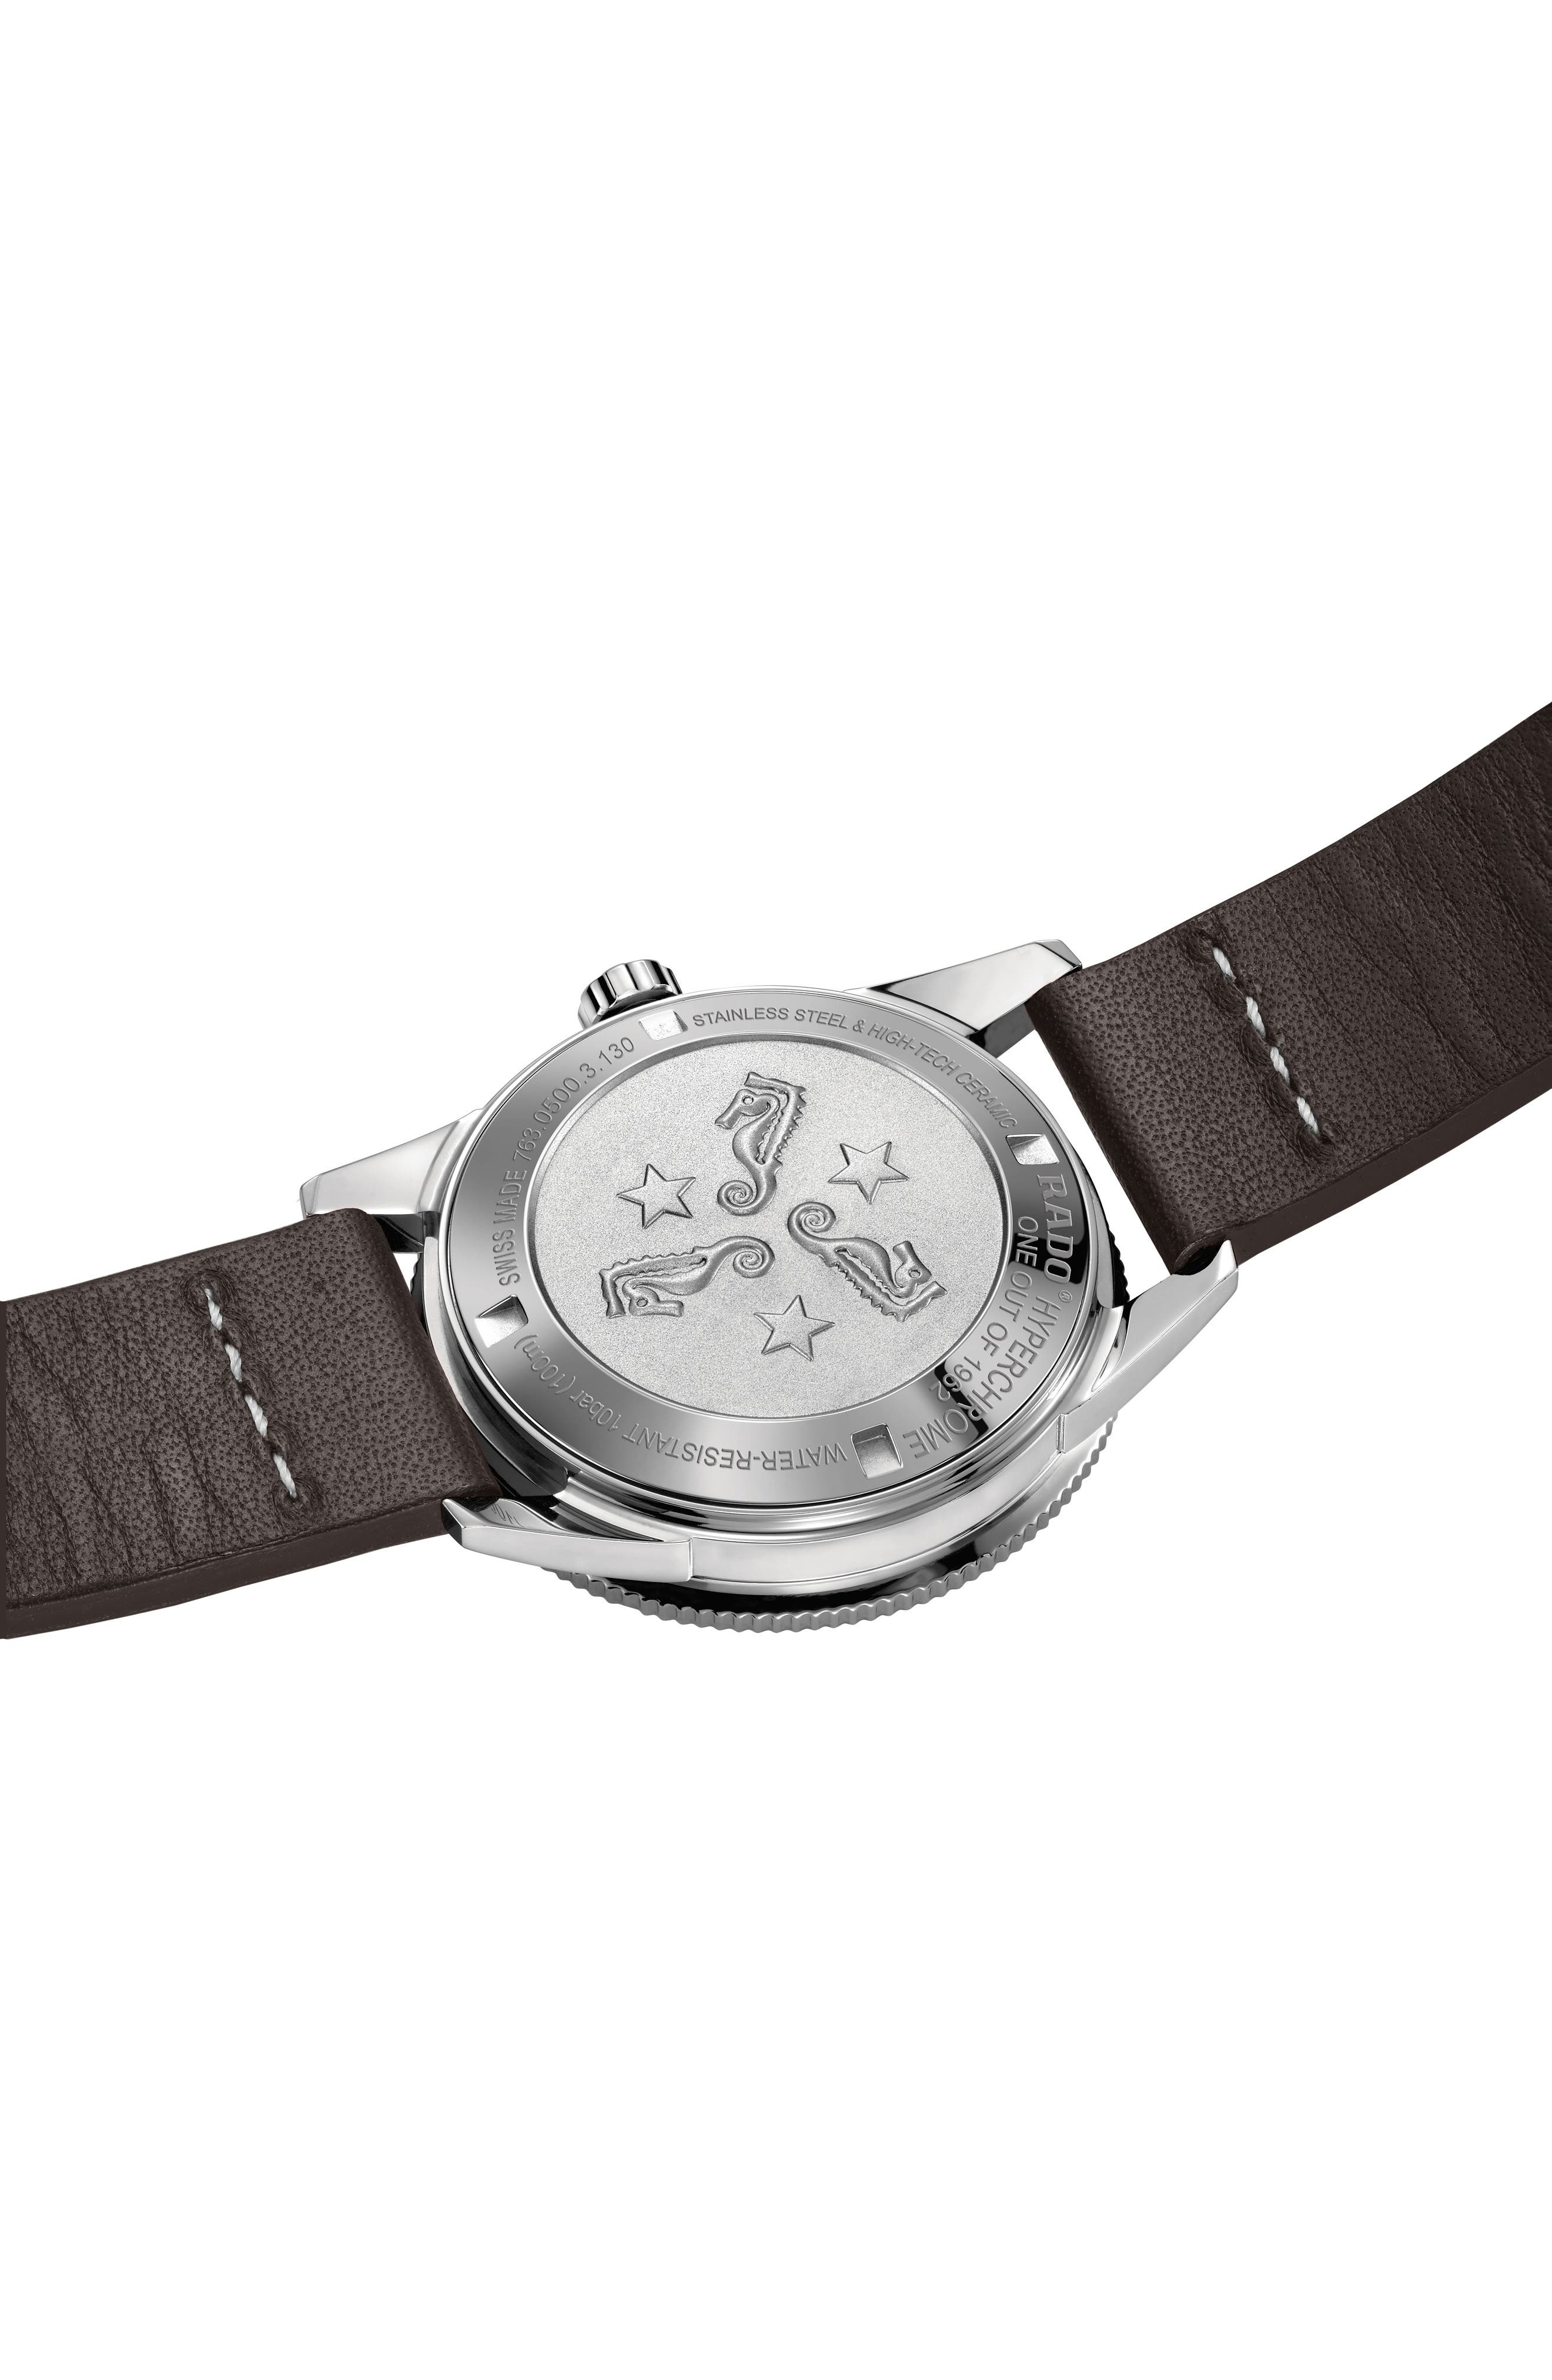 RADO, HyperChrome Captain Cook Automatic Leather Strap Watch, 37.3mm, Alternate thumbnail 2, color, BROWN/ SILVER